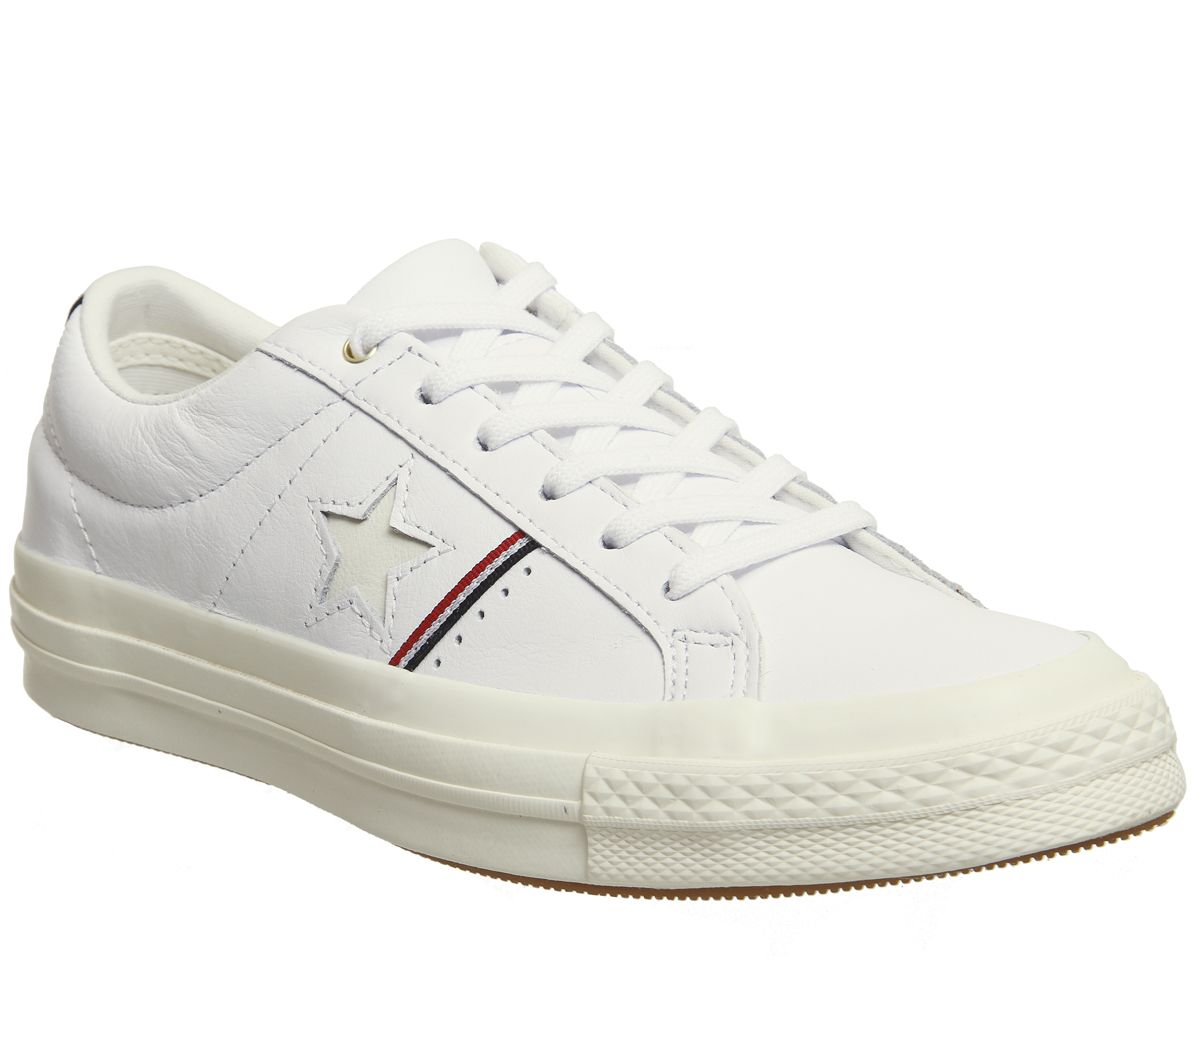 f4f965e12e32 Converse One Star White Enamel Red Egret - Hers trainers